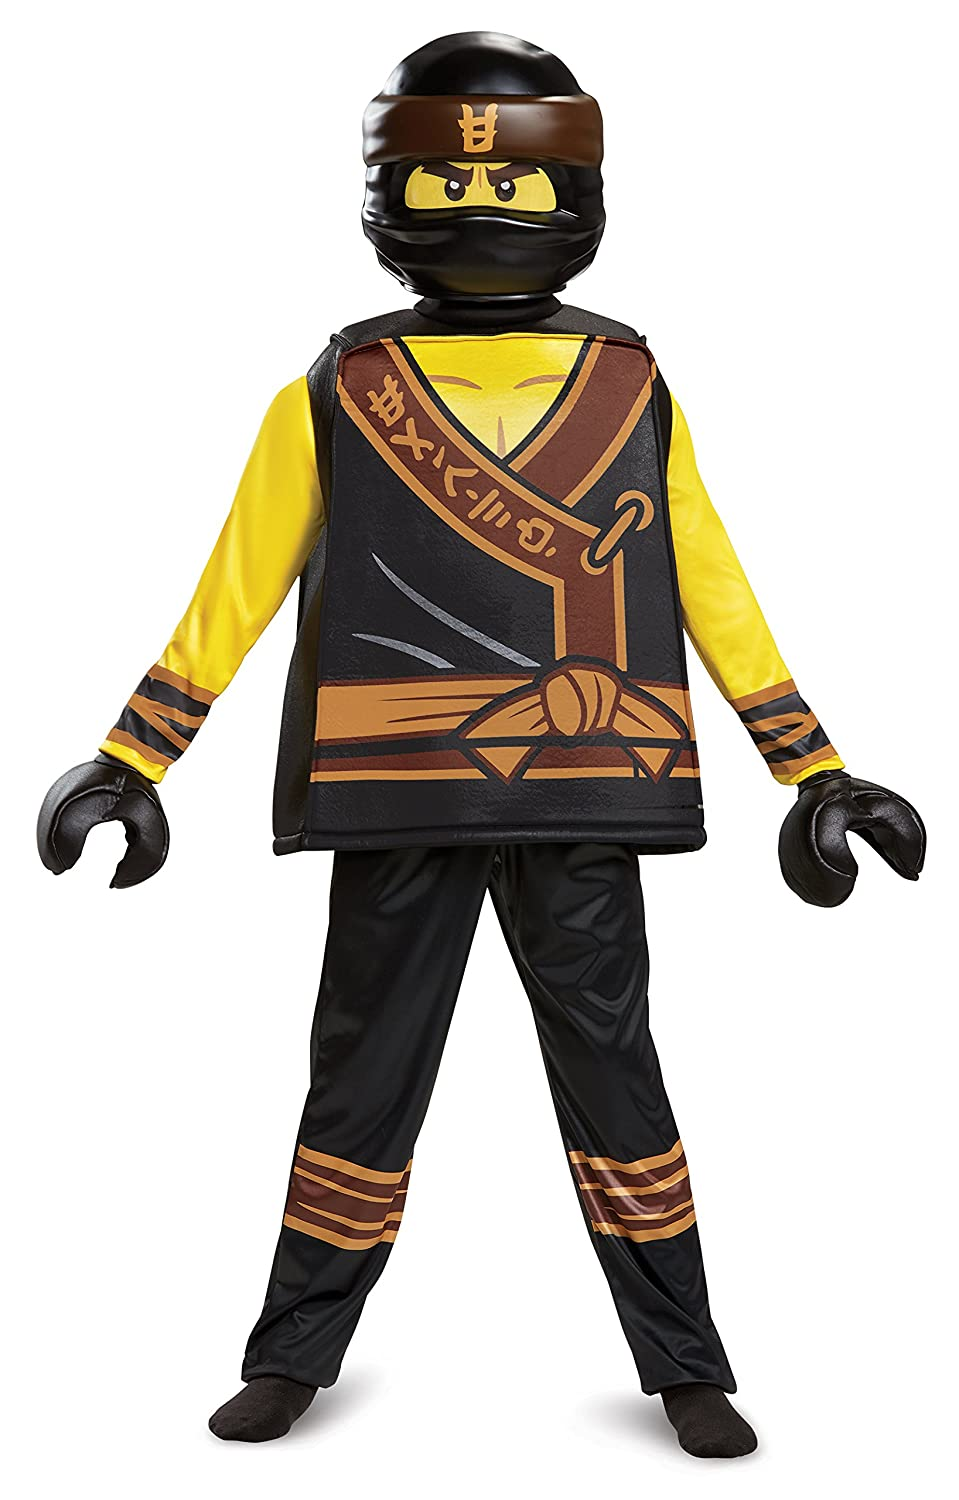 Cole LEGO Ninjago Movie Deluxe Costume